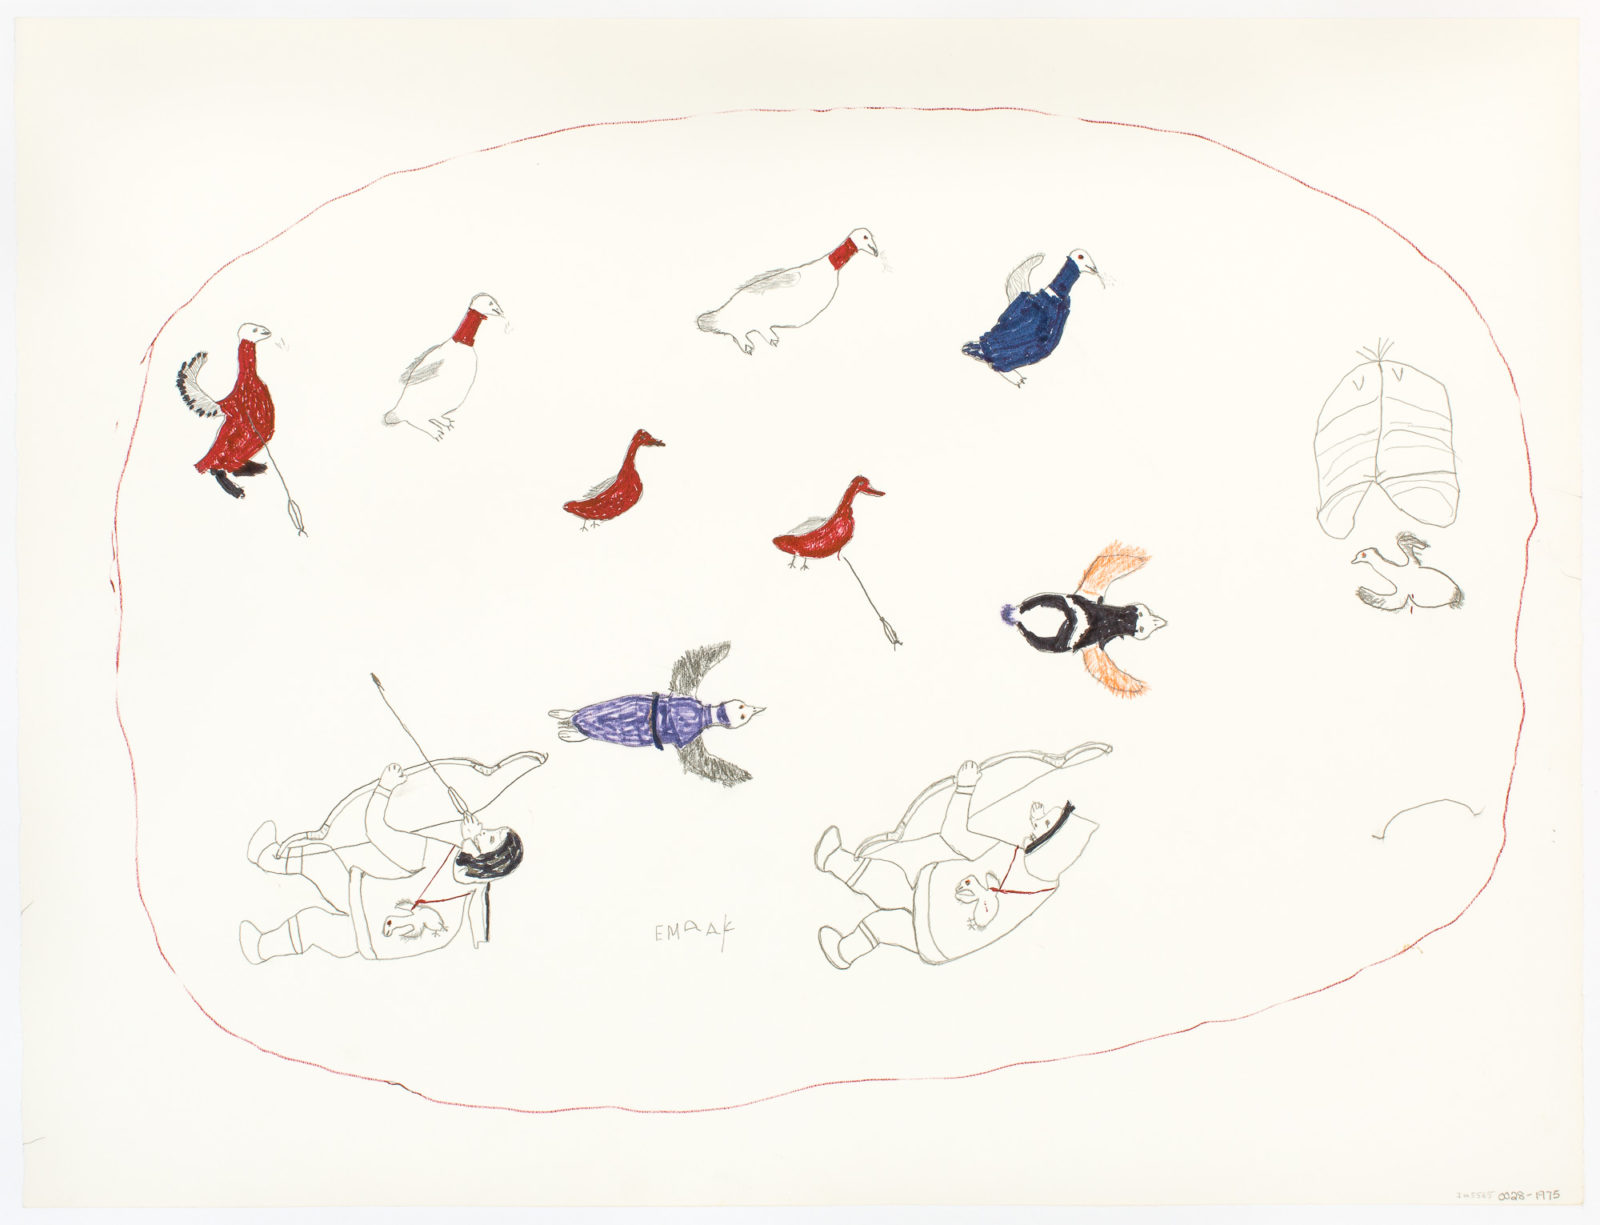 Mark Emerk - untitled (hunting birds)